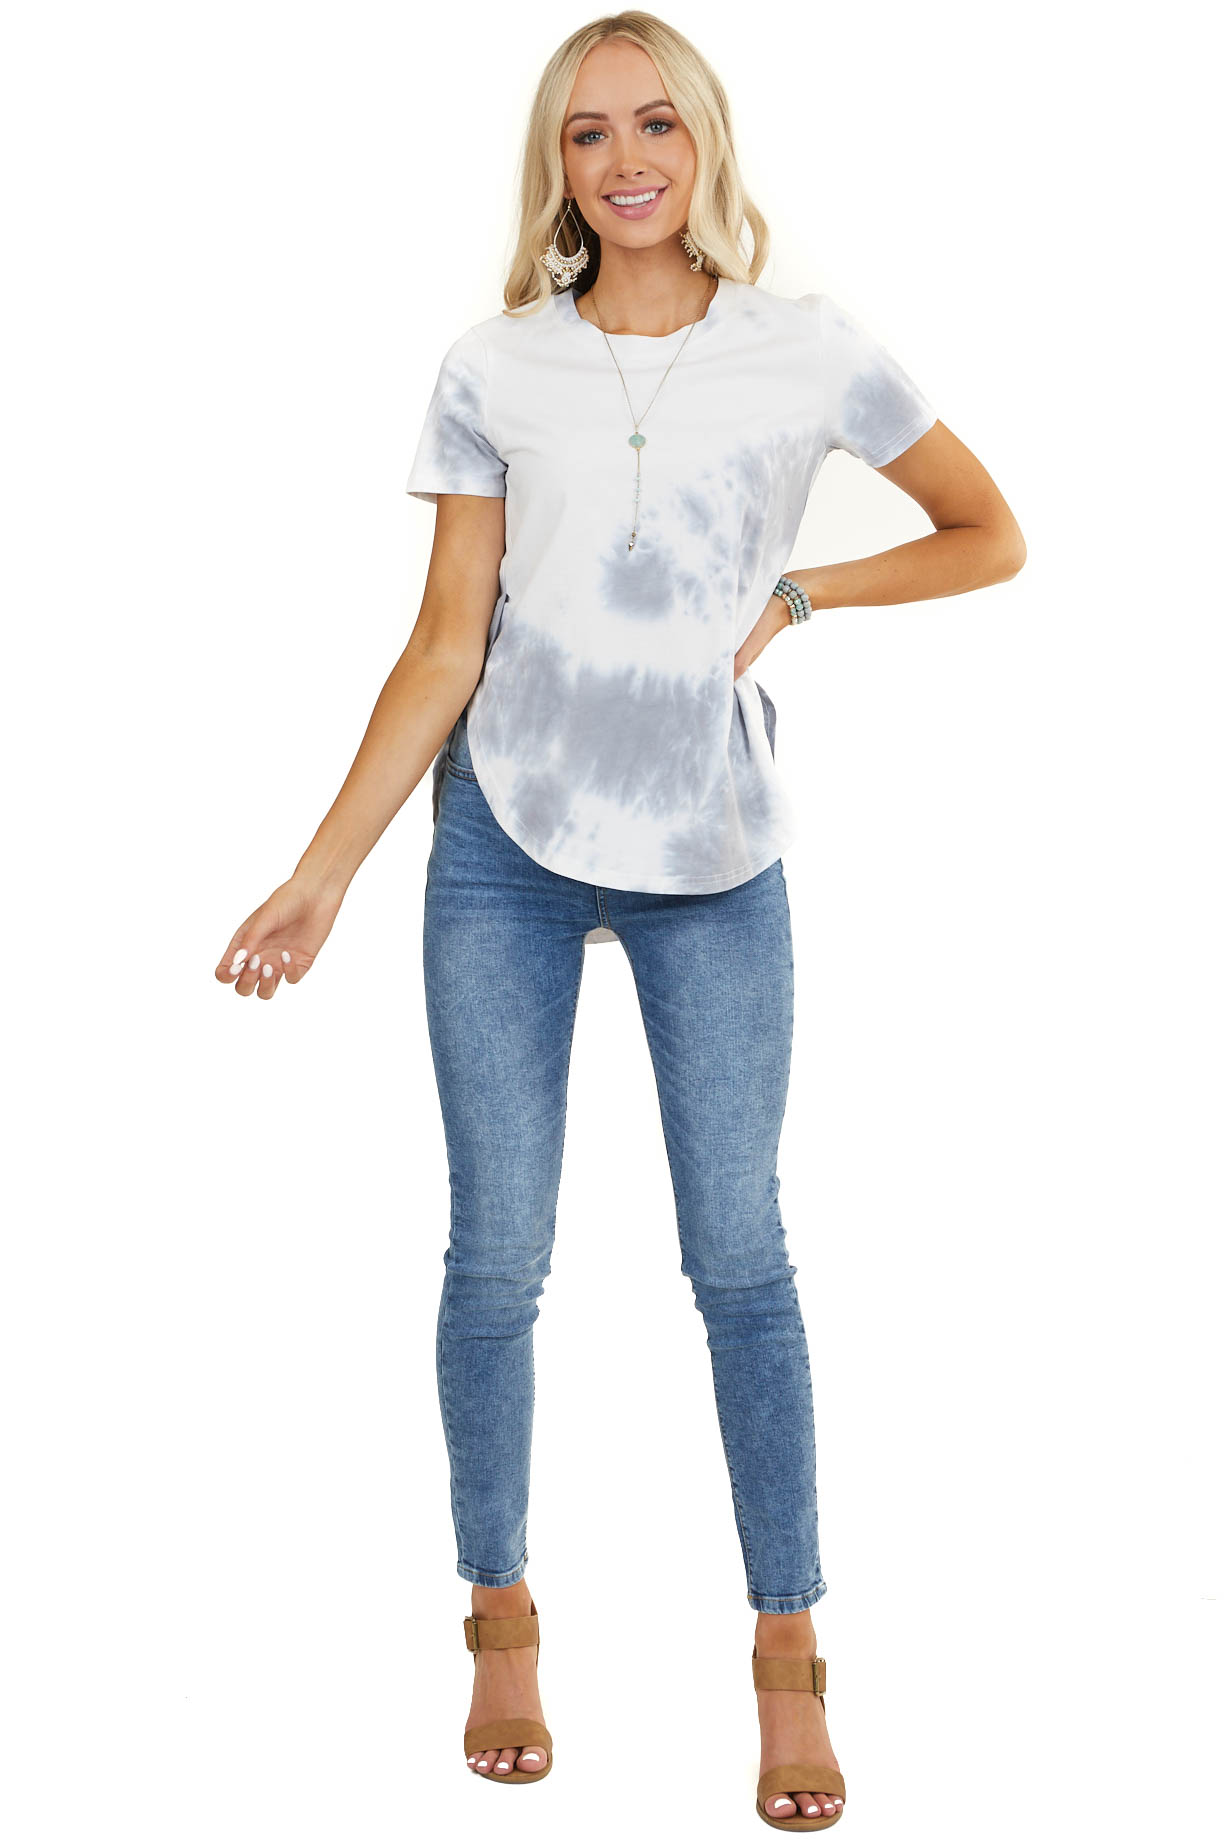 Eggshell White and Dove Grey Tie Dye Short Sleeve Knit Top